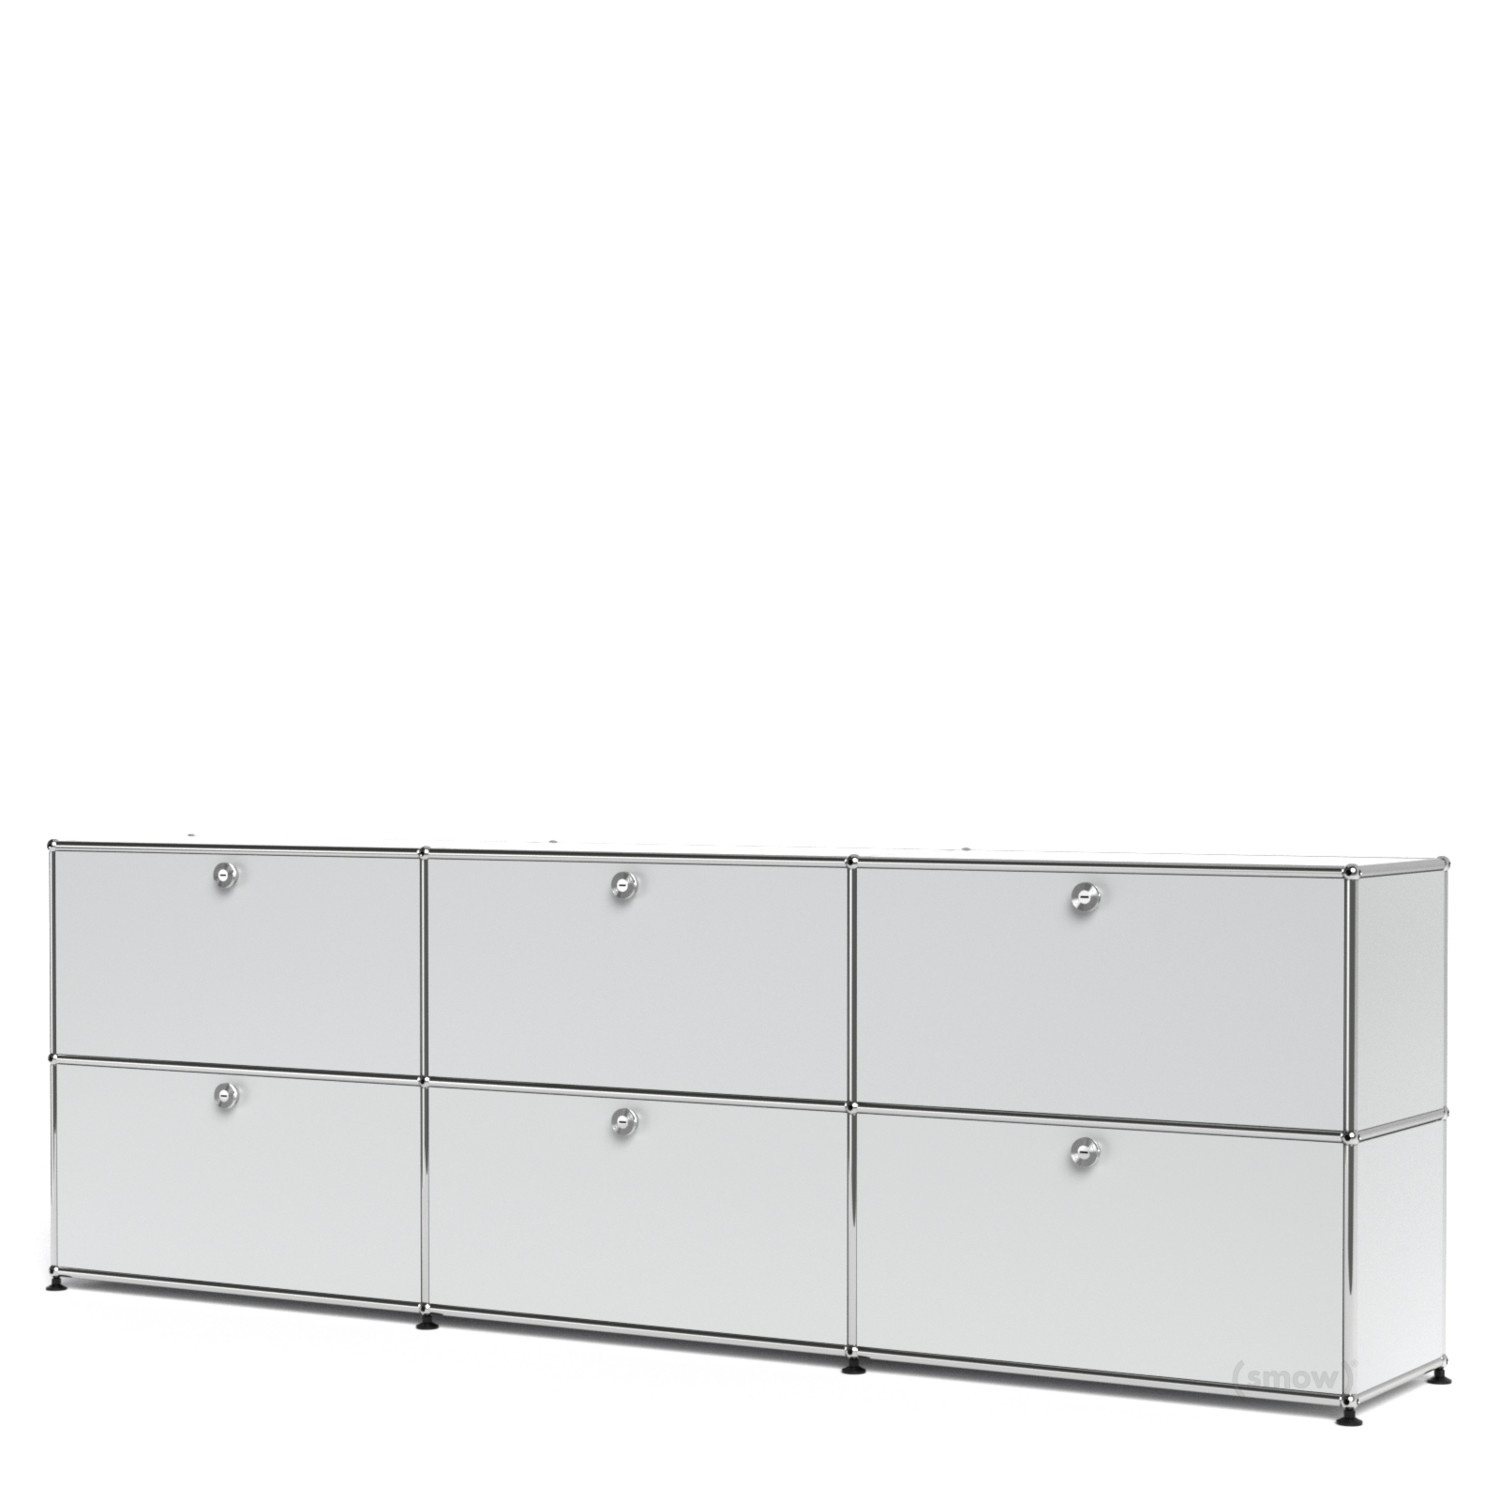 Usm haller sideboard xl customisable usm matte silver for Sideboard usm